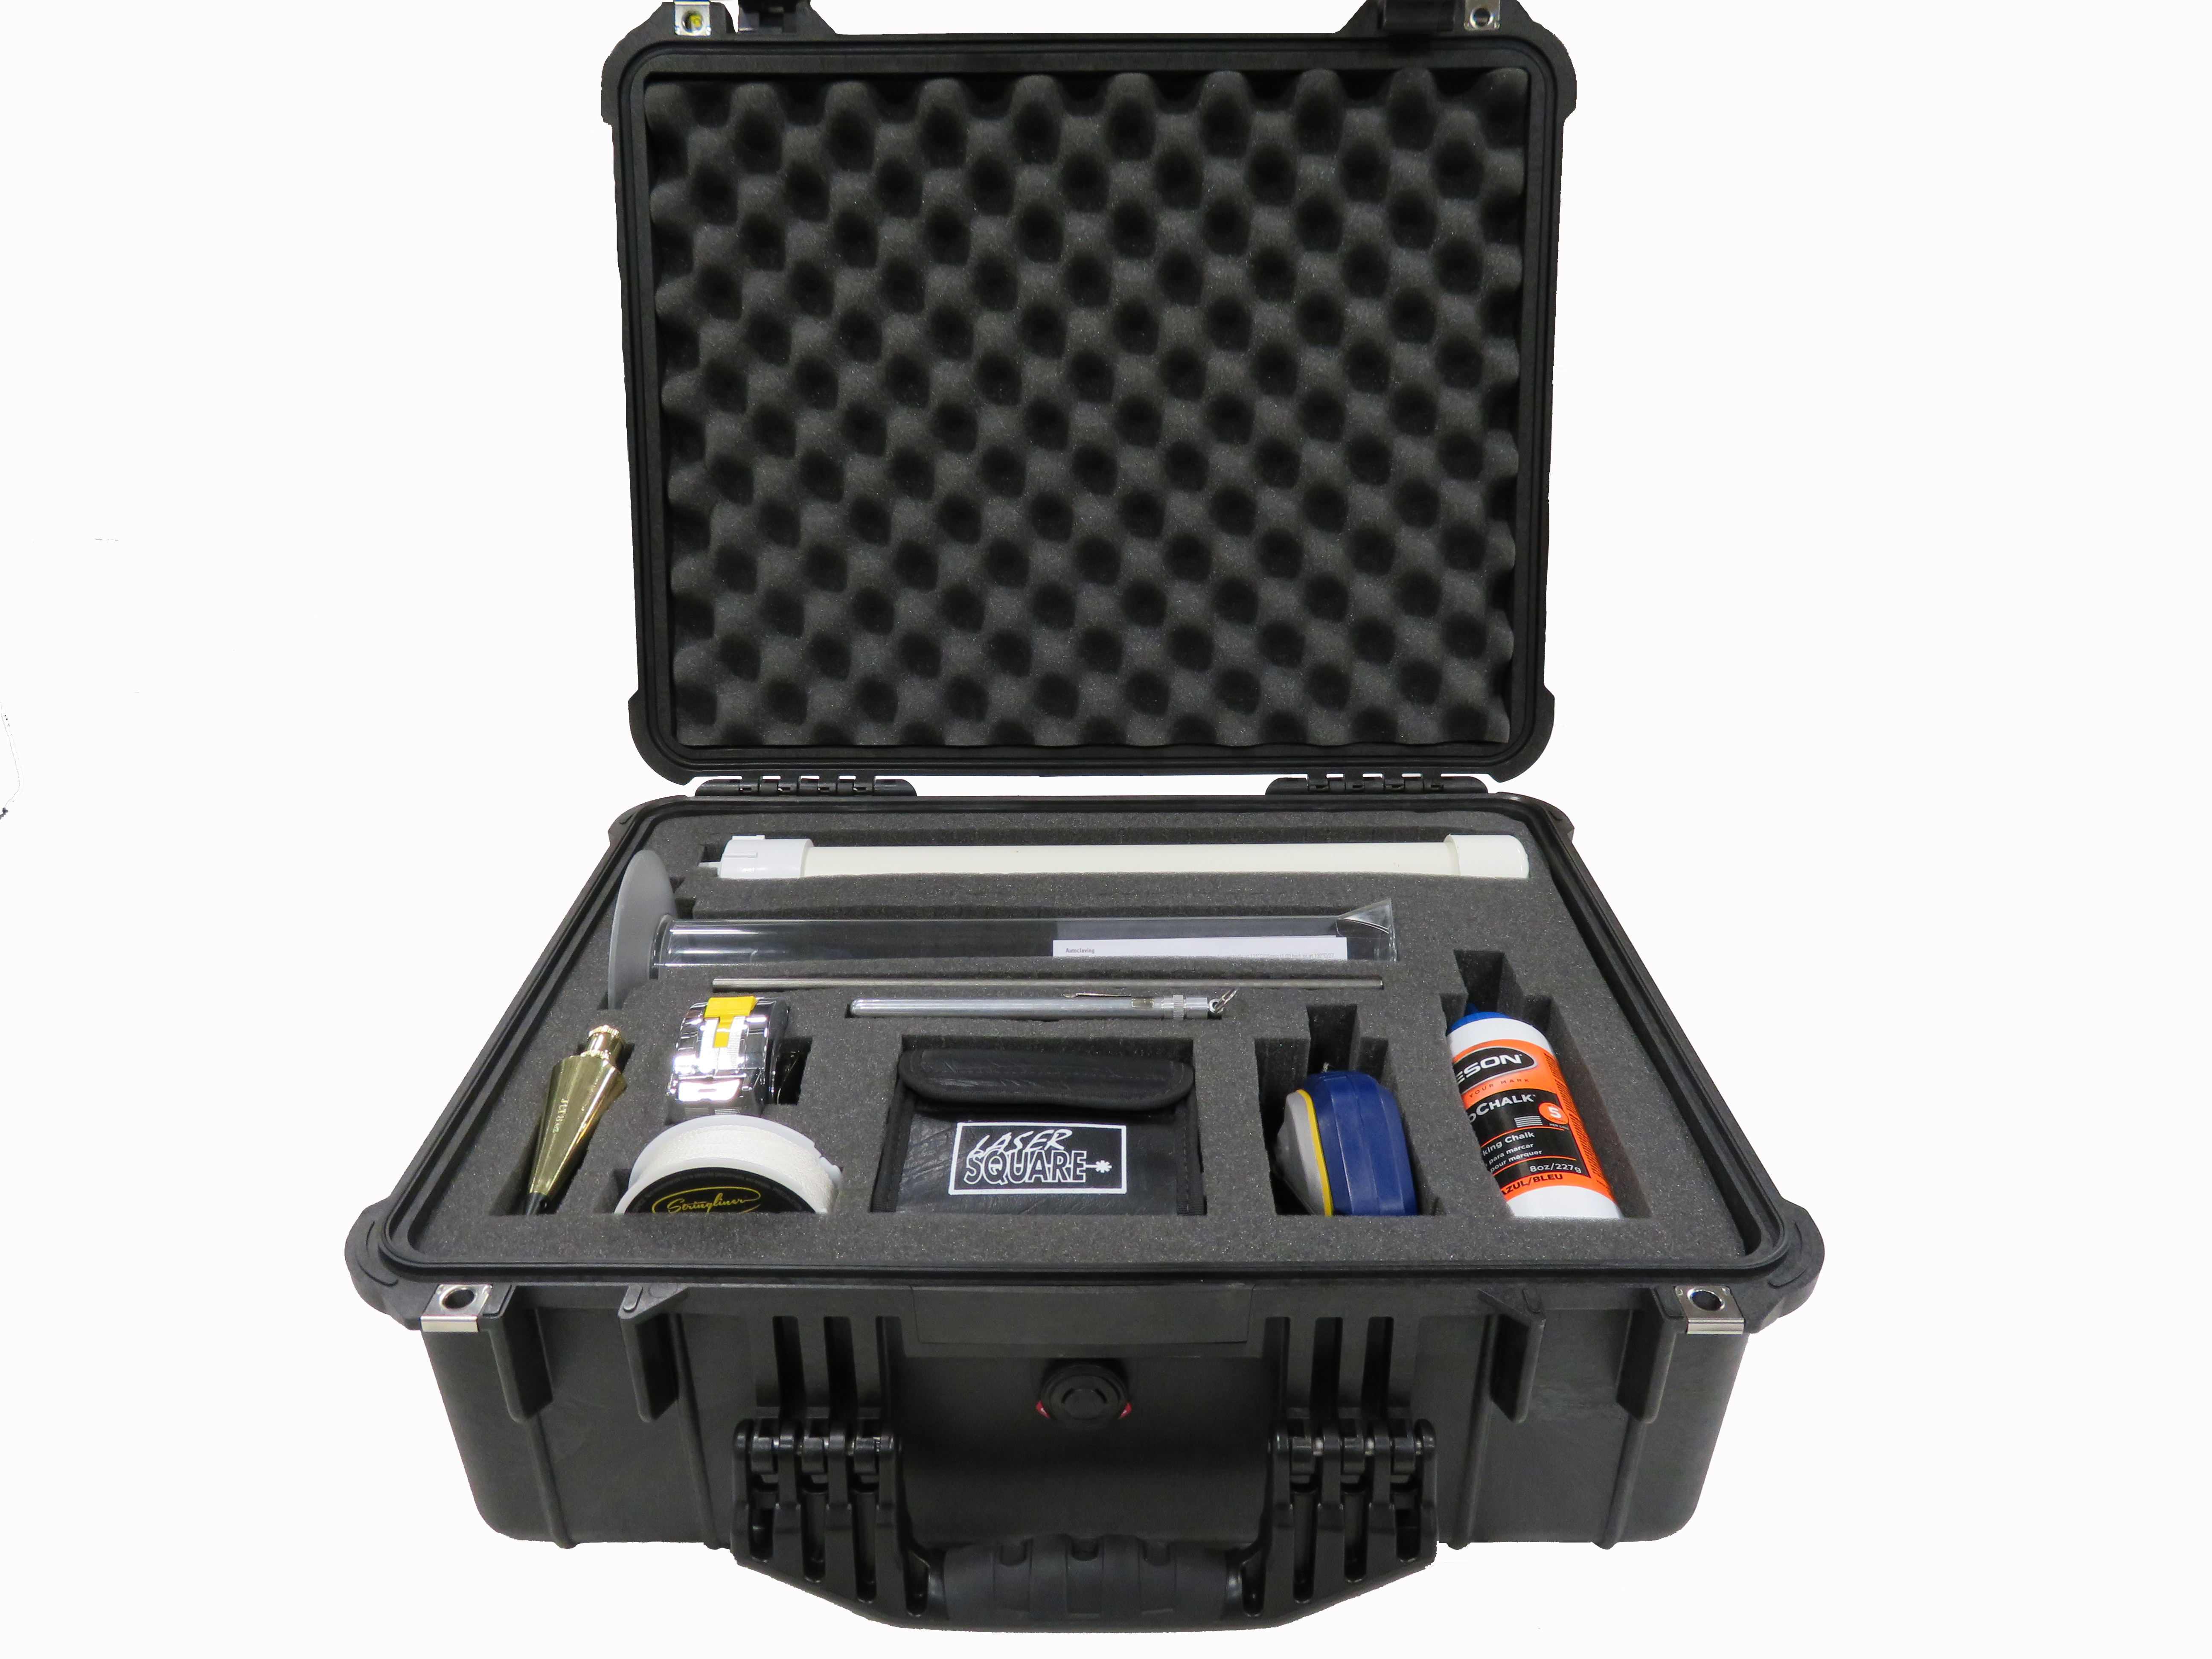 rq4 fuel density test kit- modified